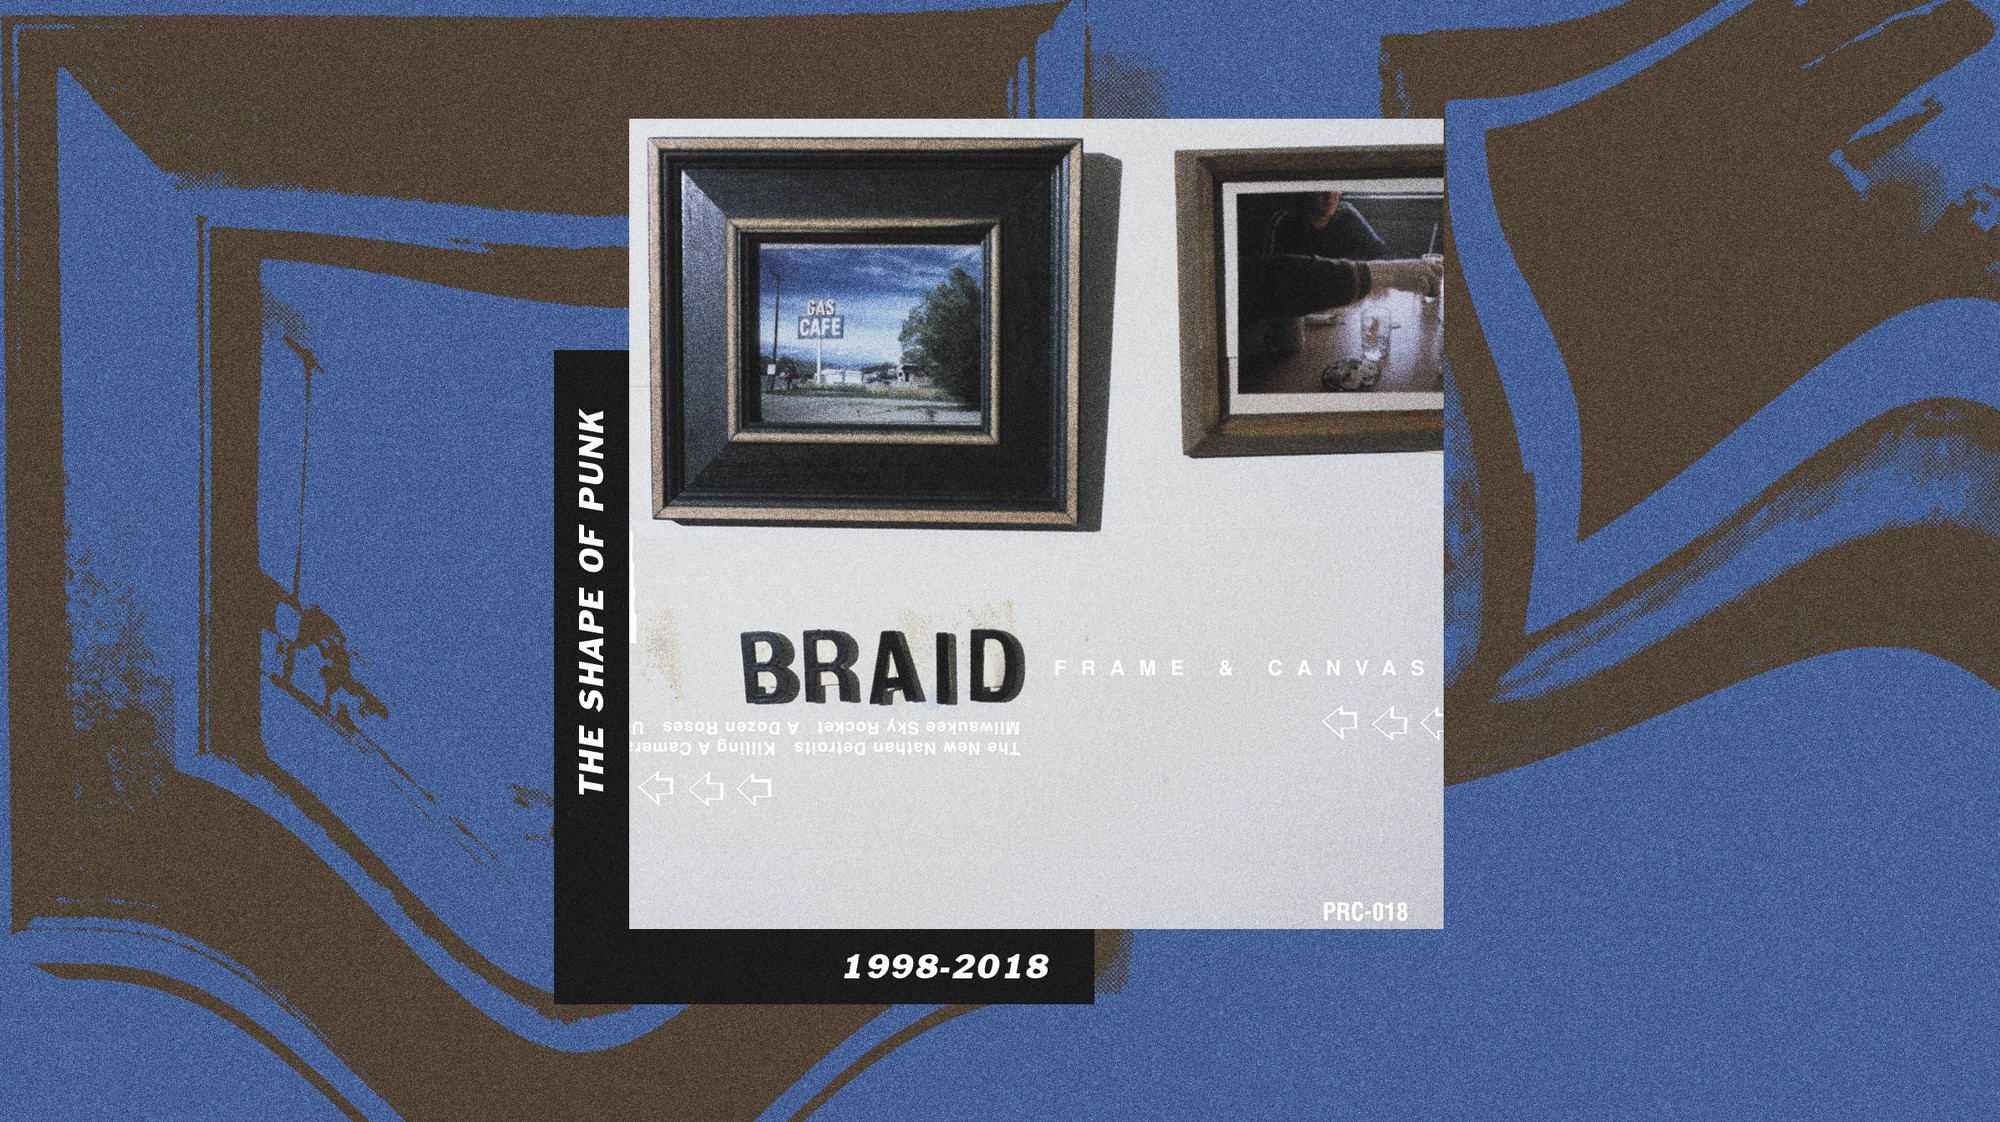 Braid's 'Frame & Canvas' Was Too Ahead of Its Time for Its